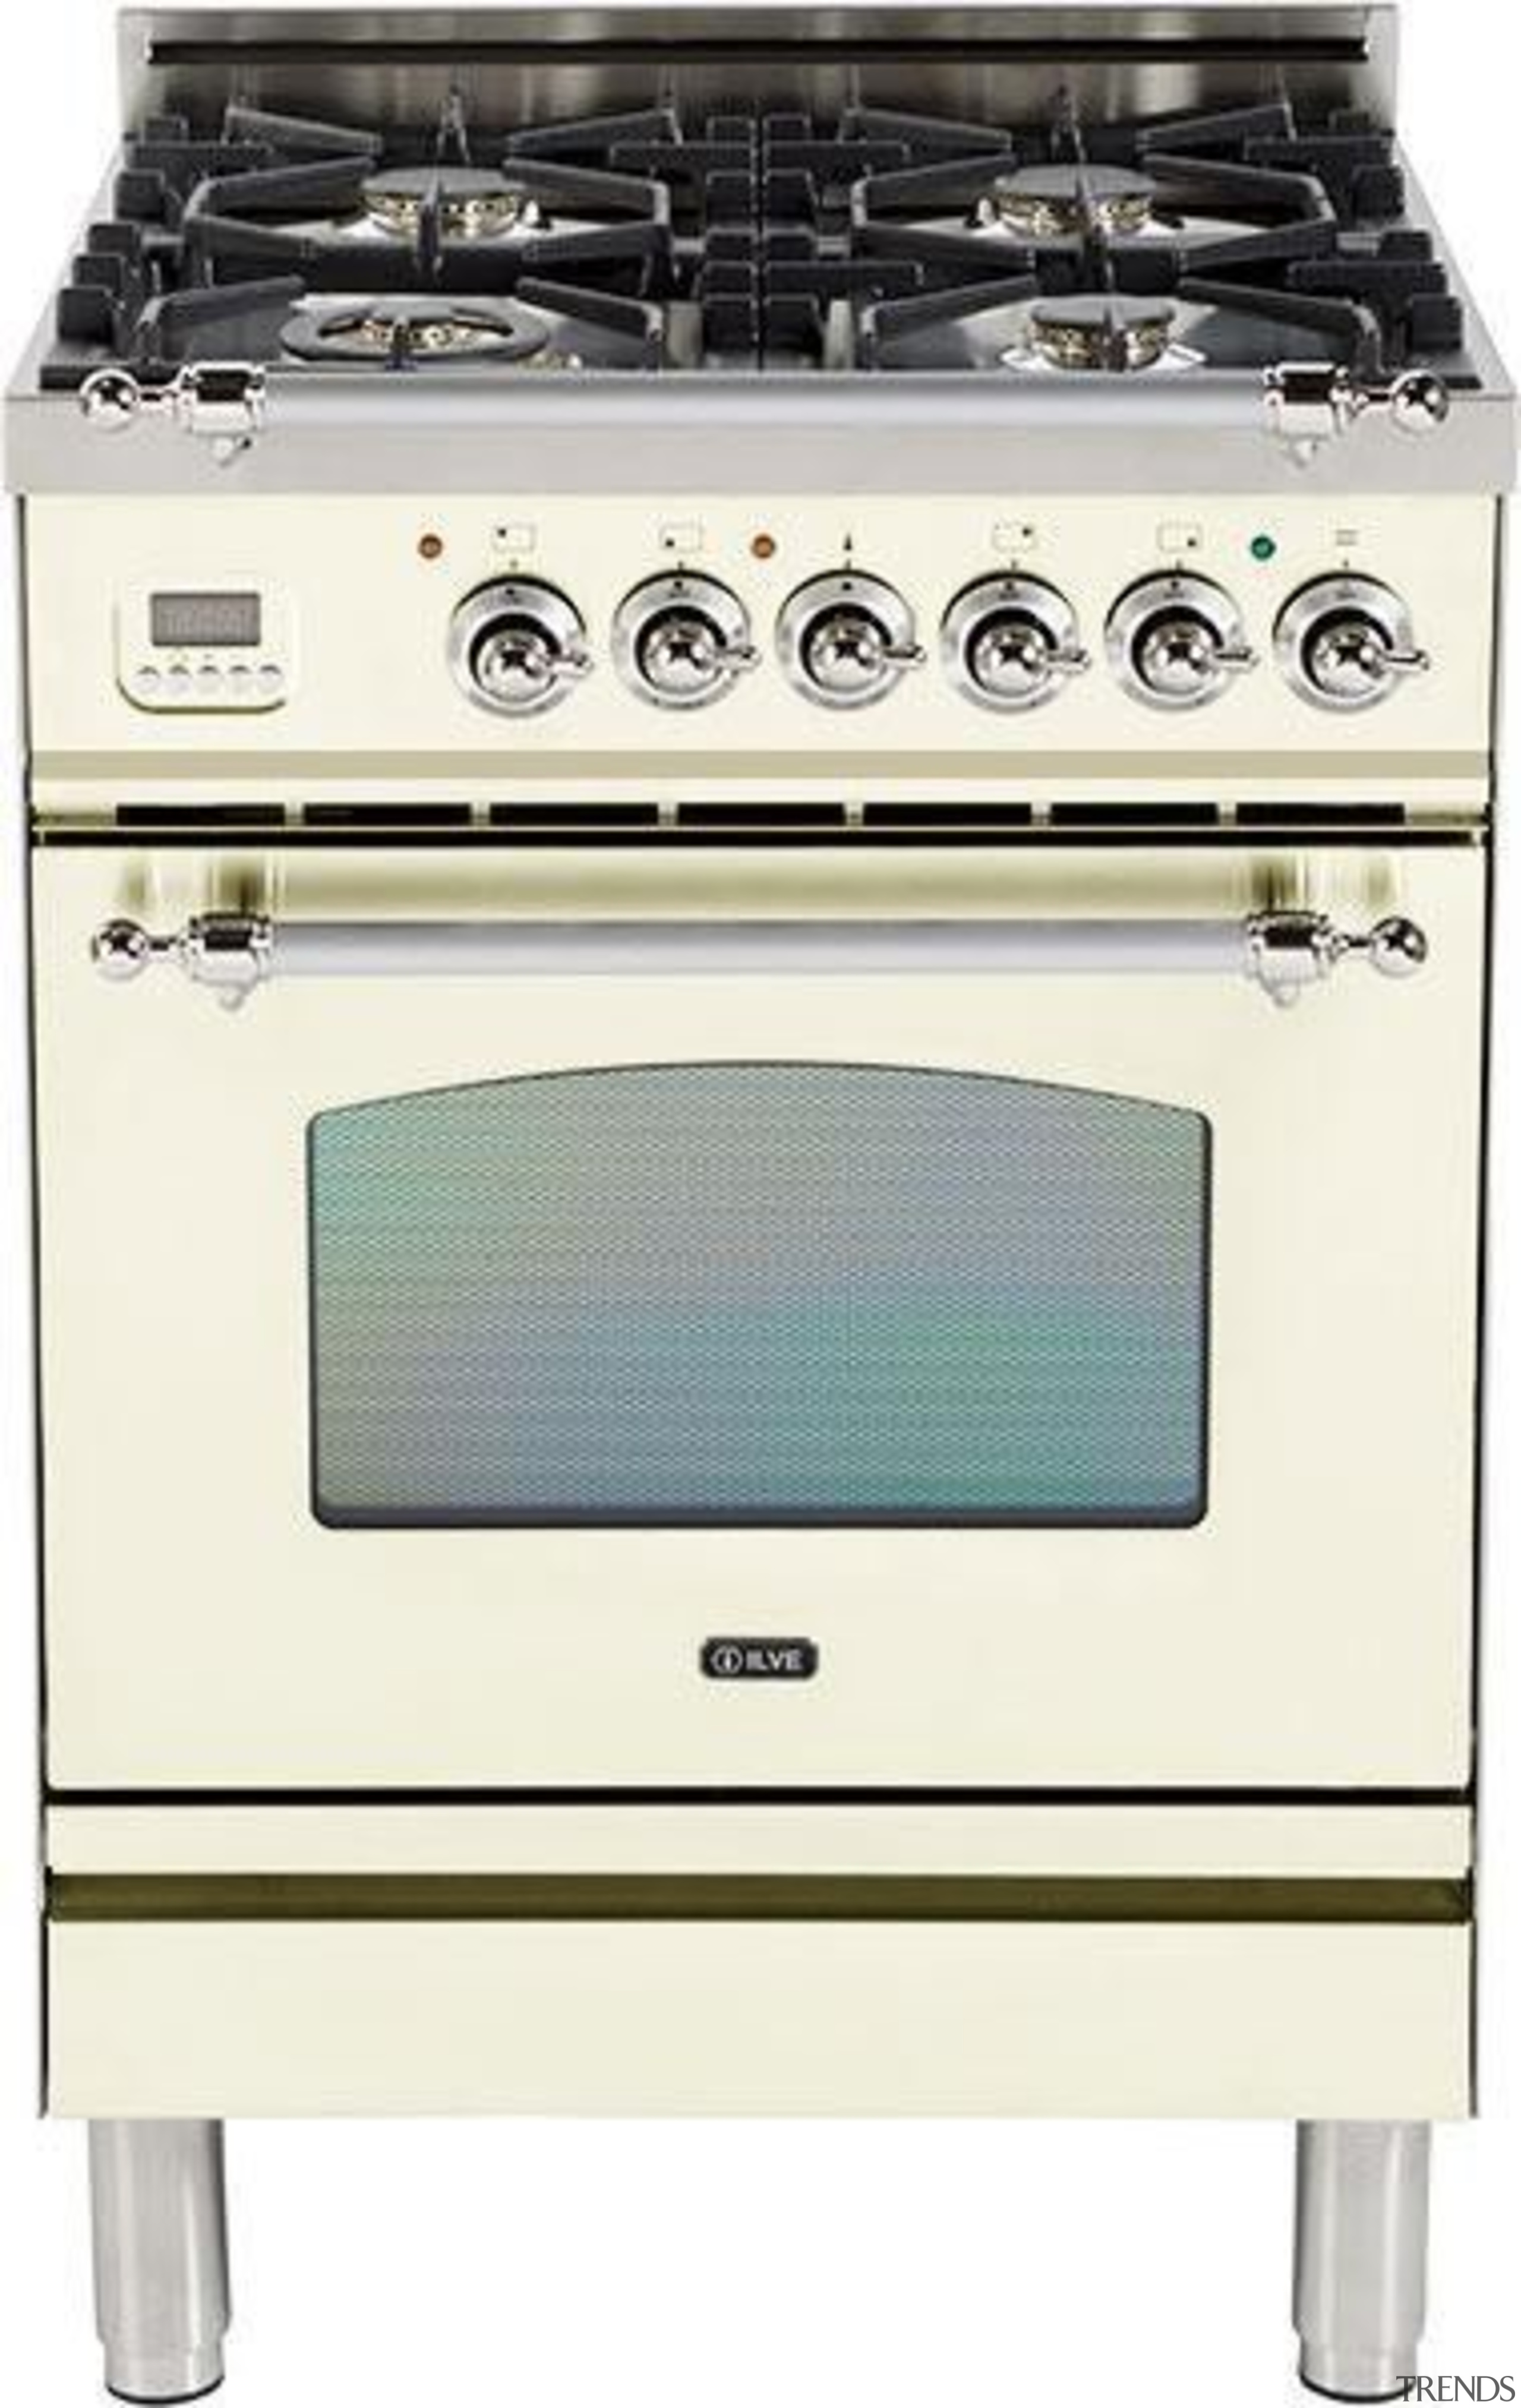 The Nostalgie series features many of the ILVE gas stove, home appliance, kitchen appliance, kitchen stove, major appliance, product, white